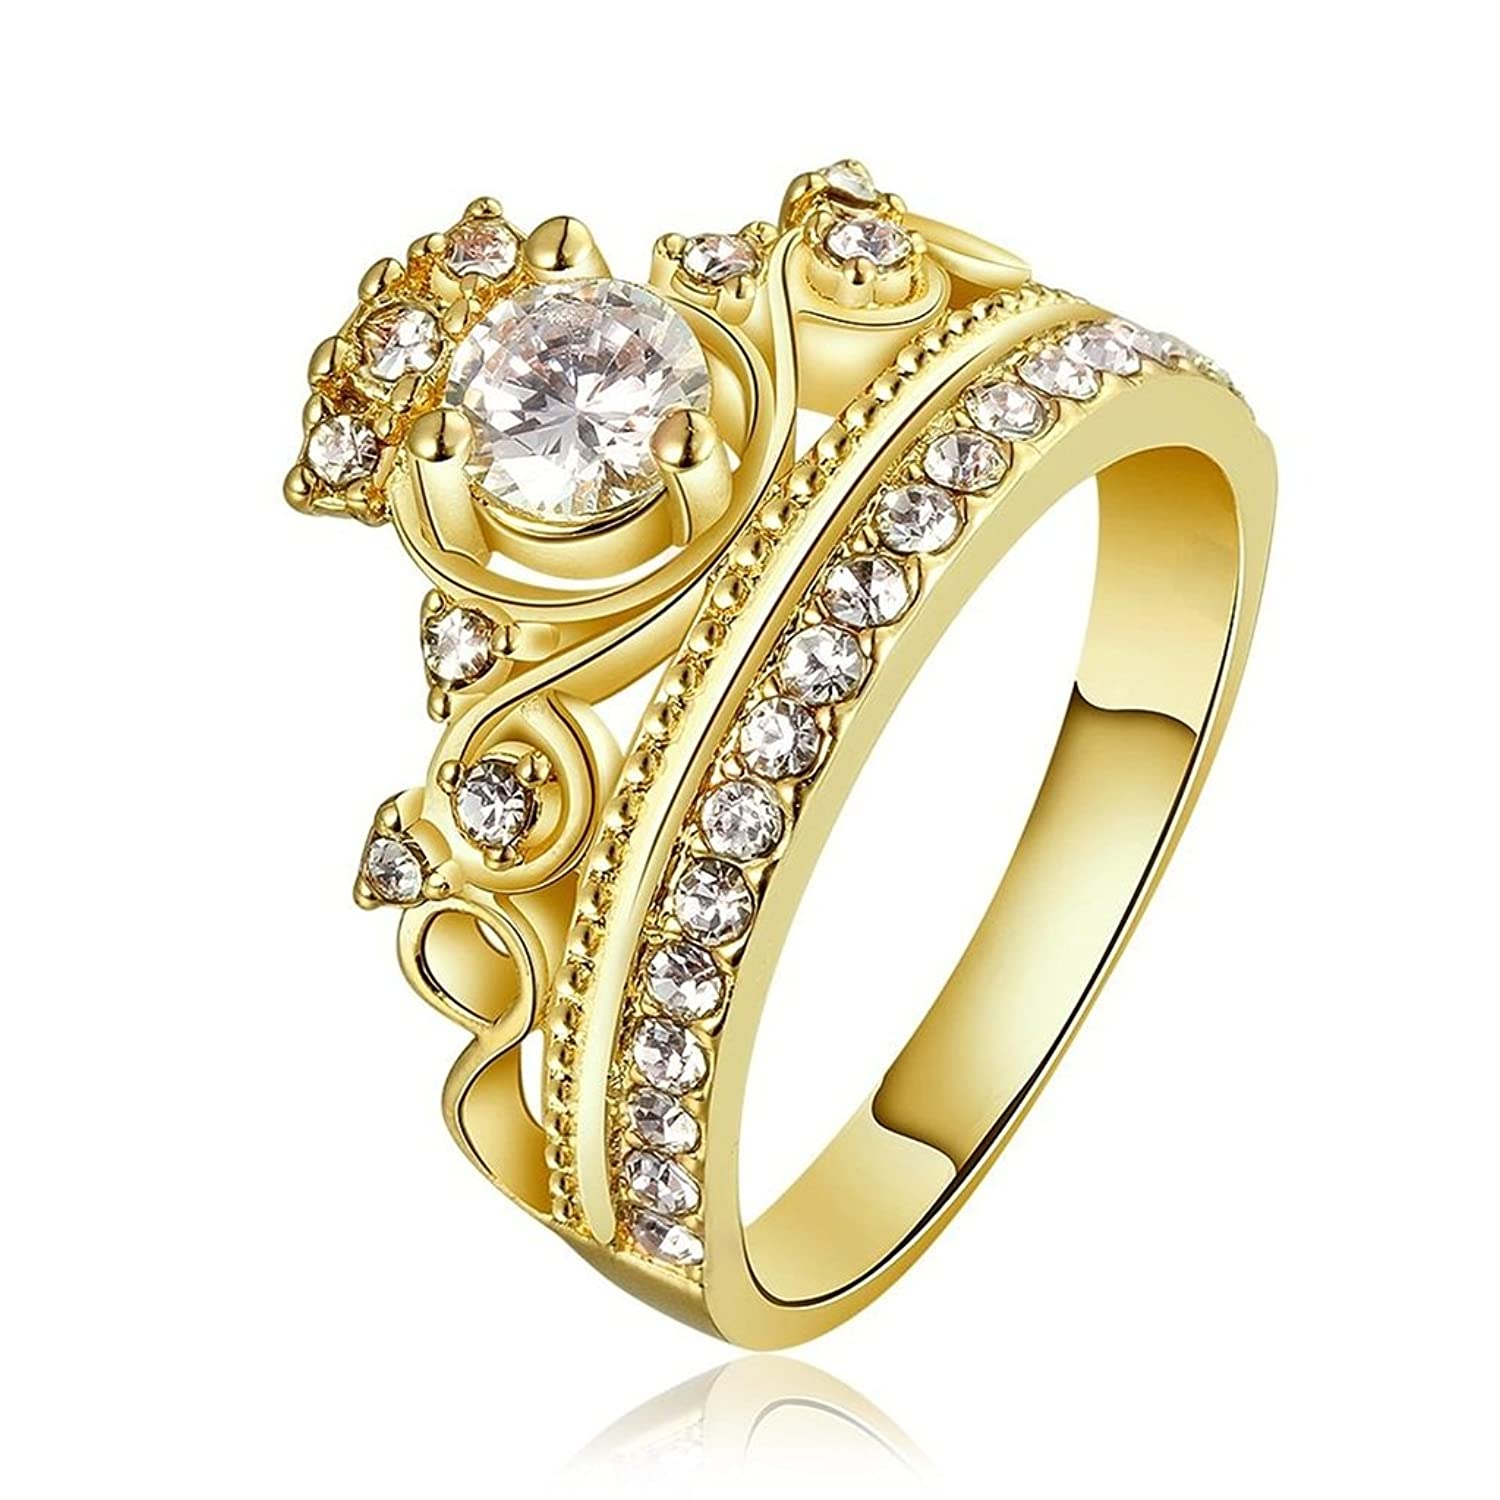 Moandy Jewelry Rings 18K Gold Plated Cubic Zirconia Crystal Princess